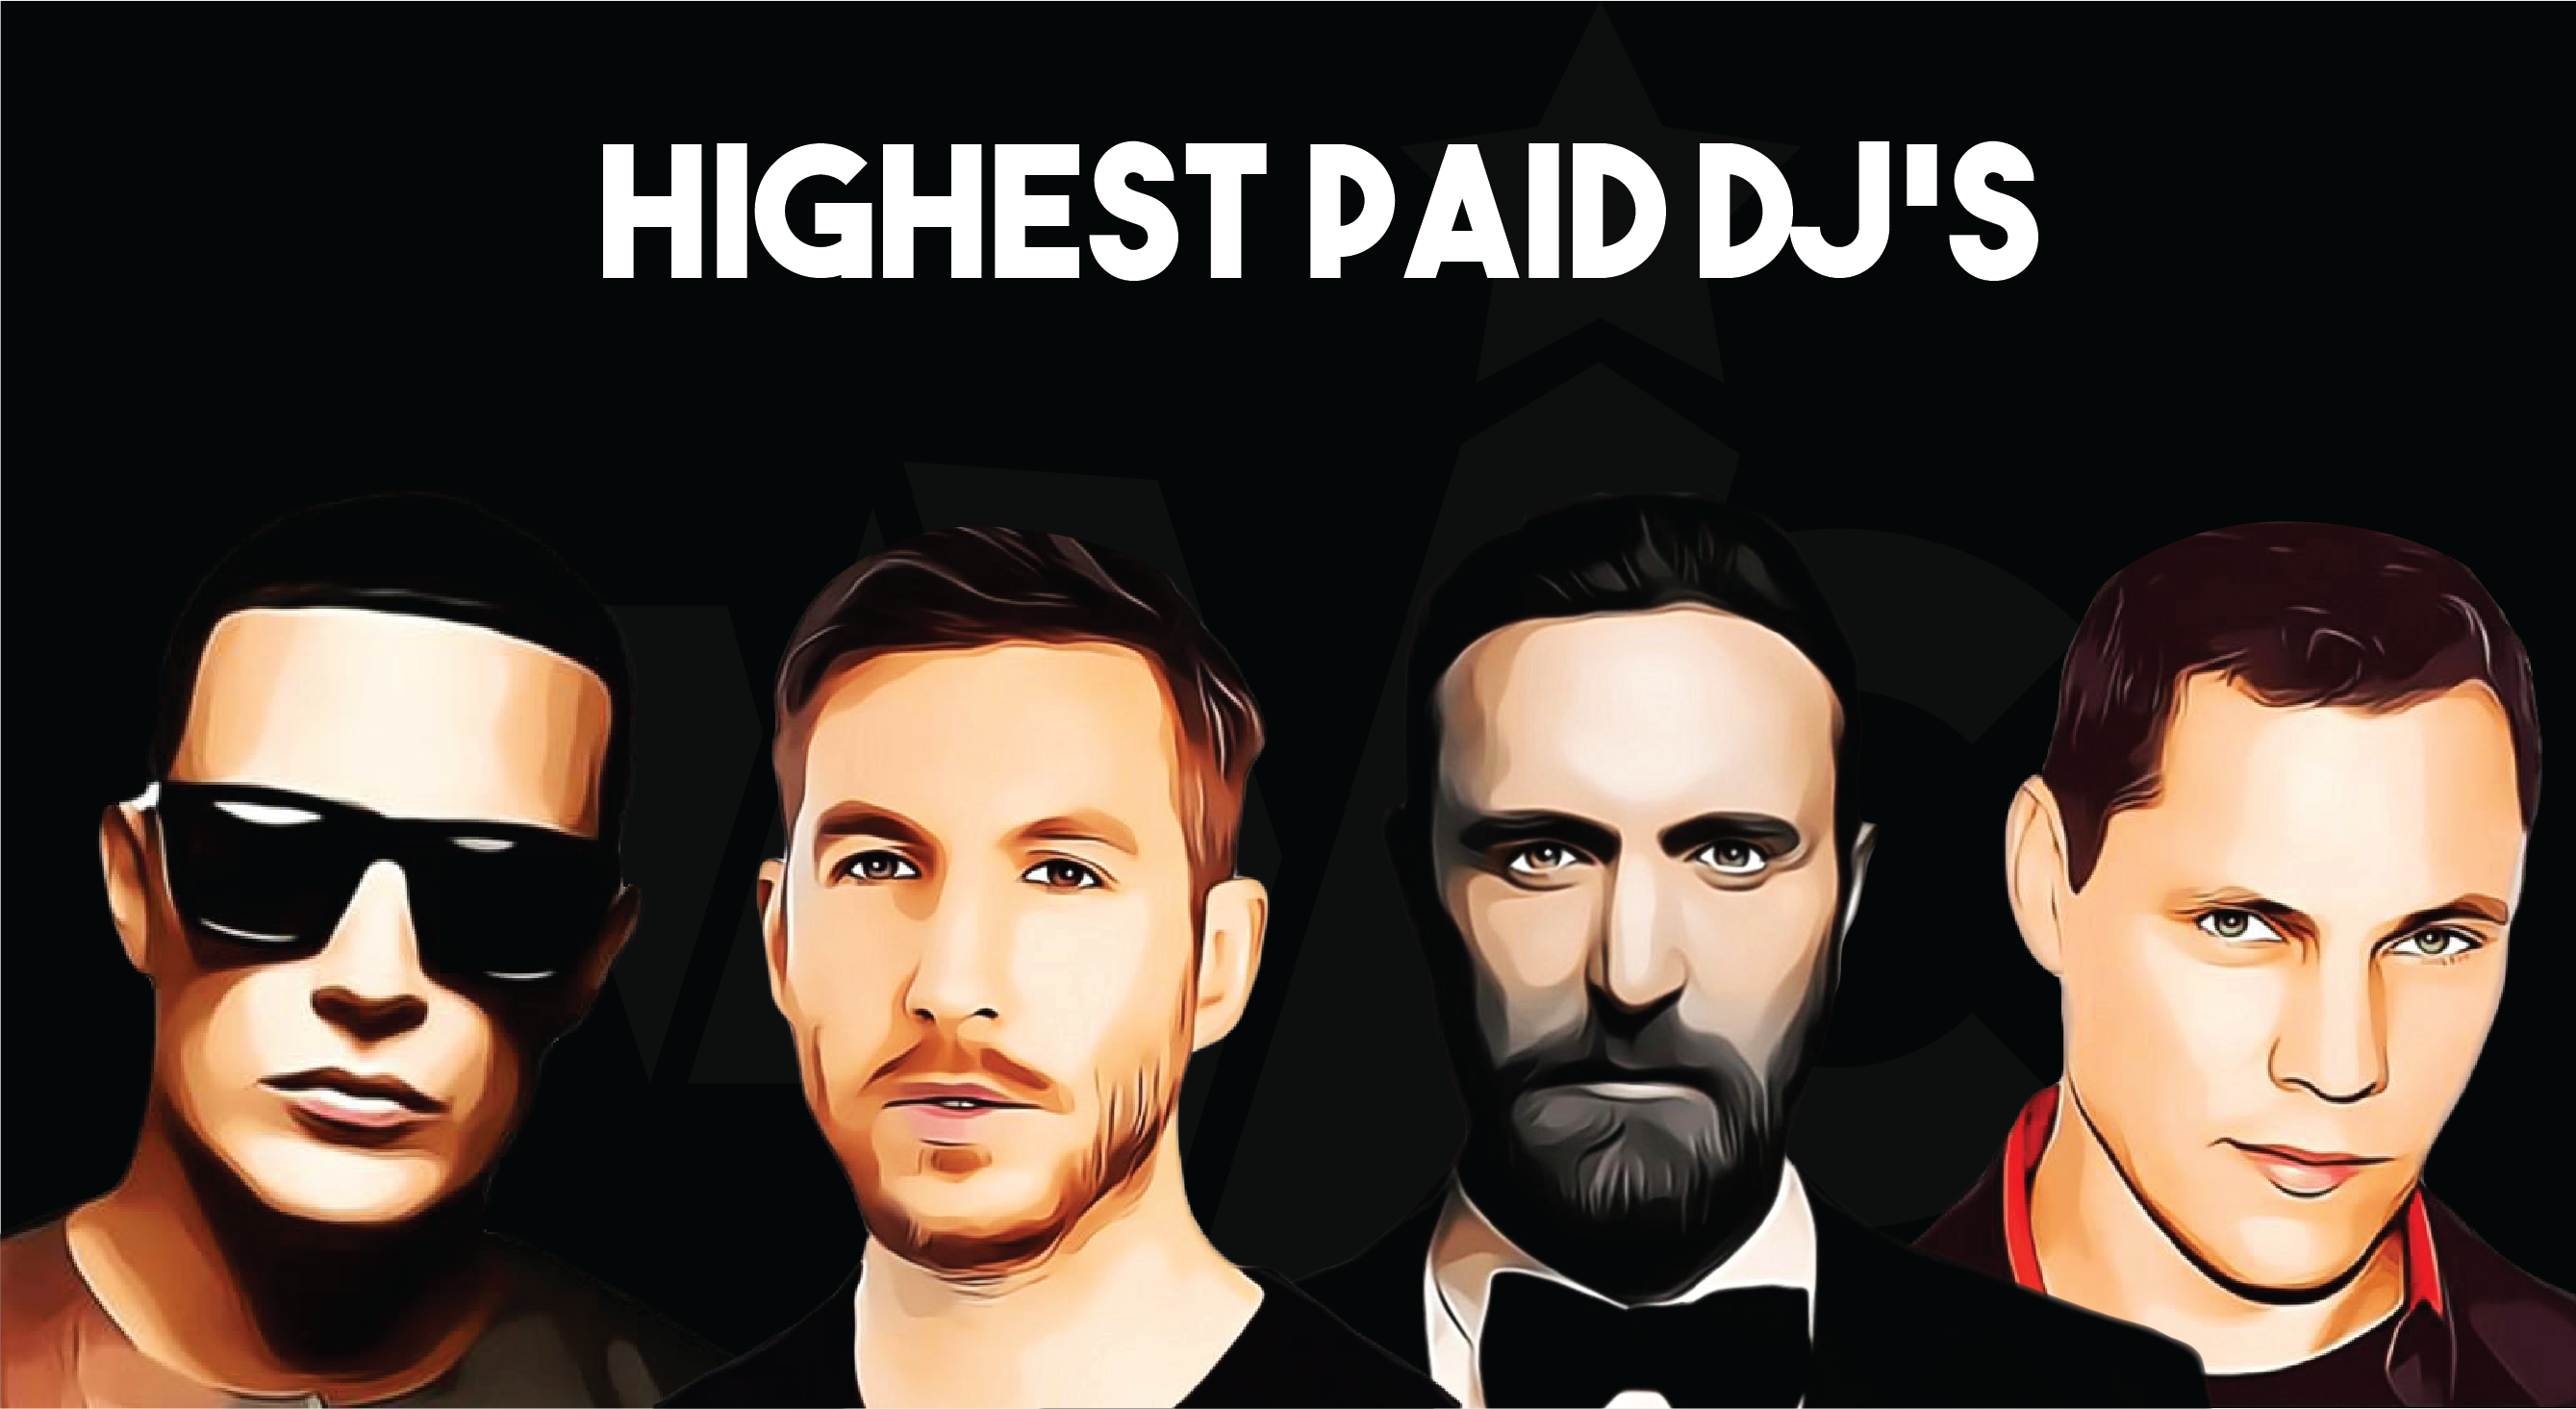 Top 15 Highest Paid DJs - Current Salary Net Worth